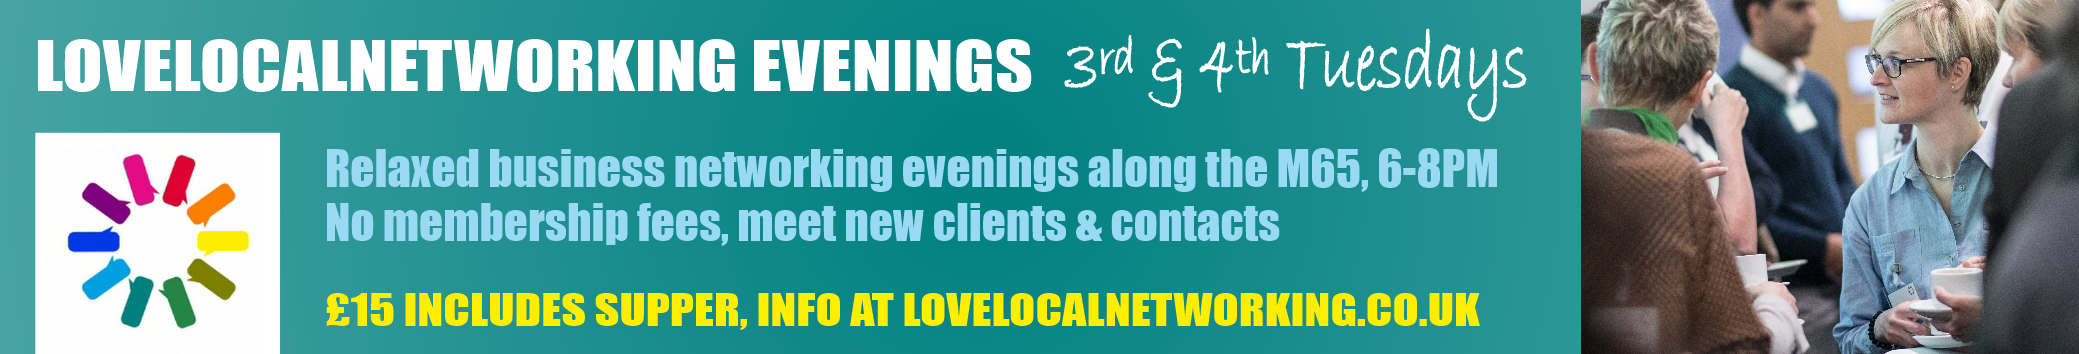 lovelocalnetworking events